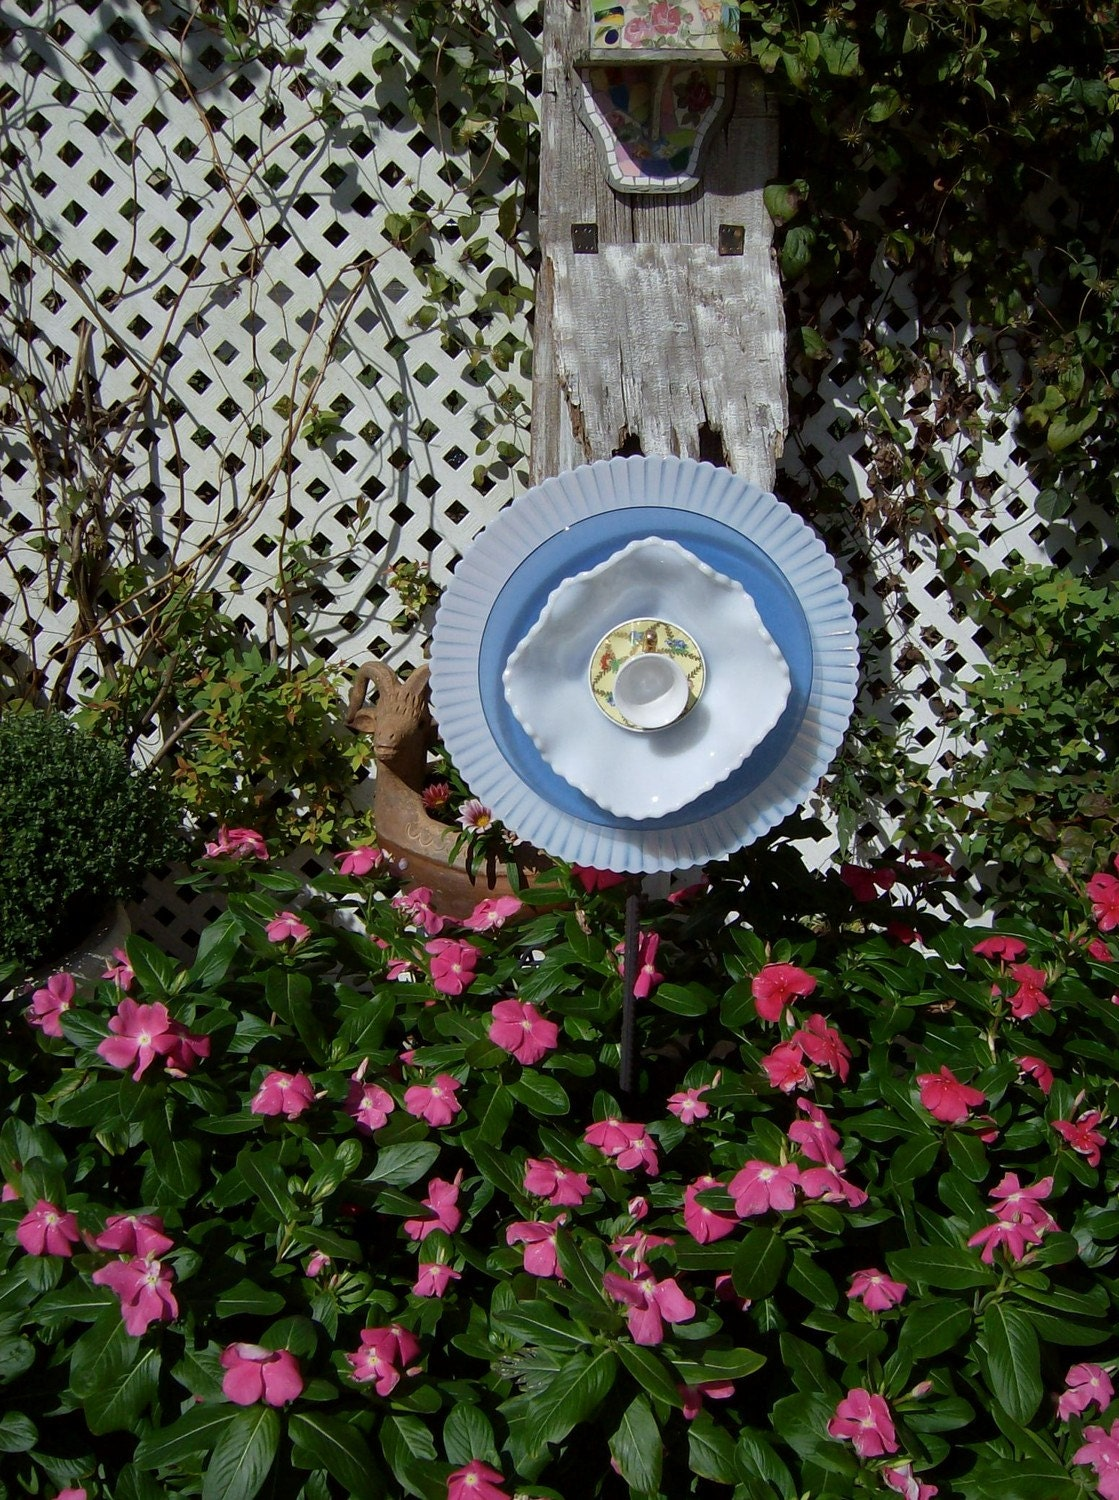 Unique garden decor yard art photograph on sale yard garde for Unique yard decorations